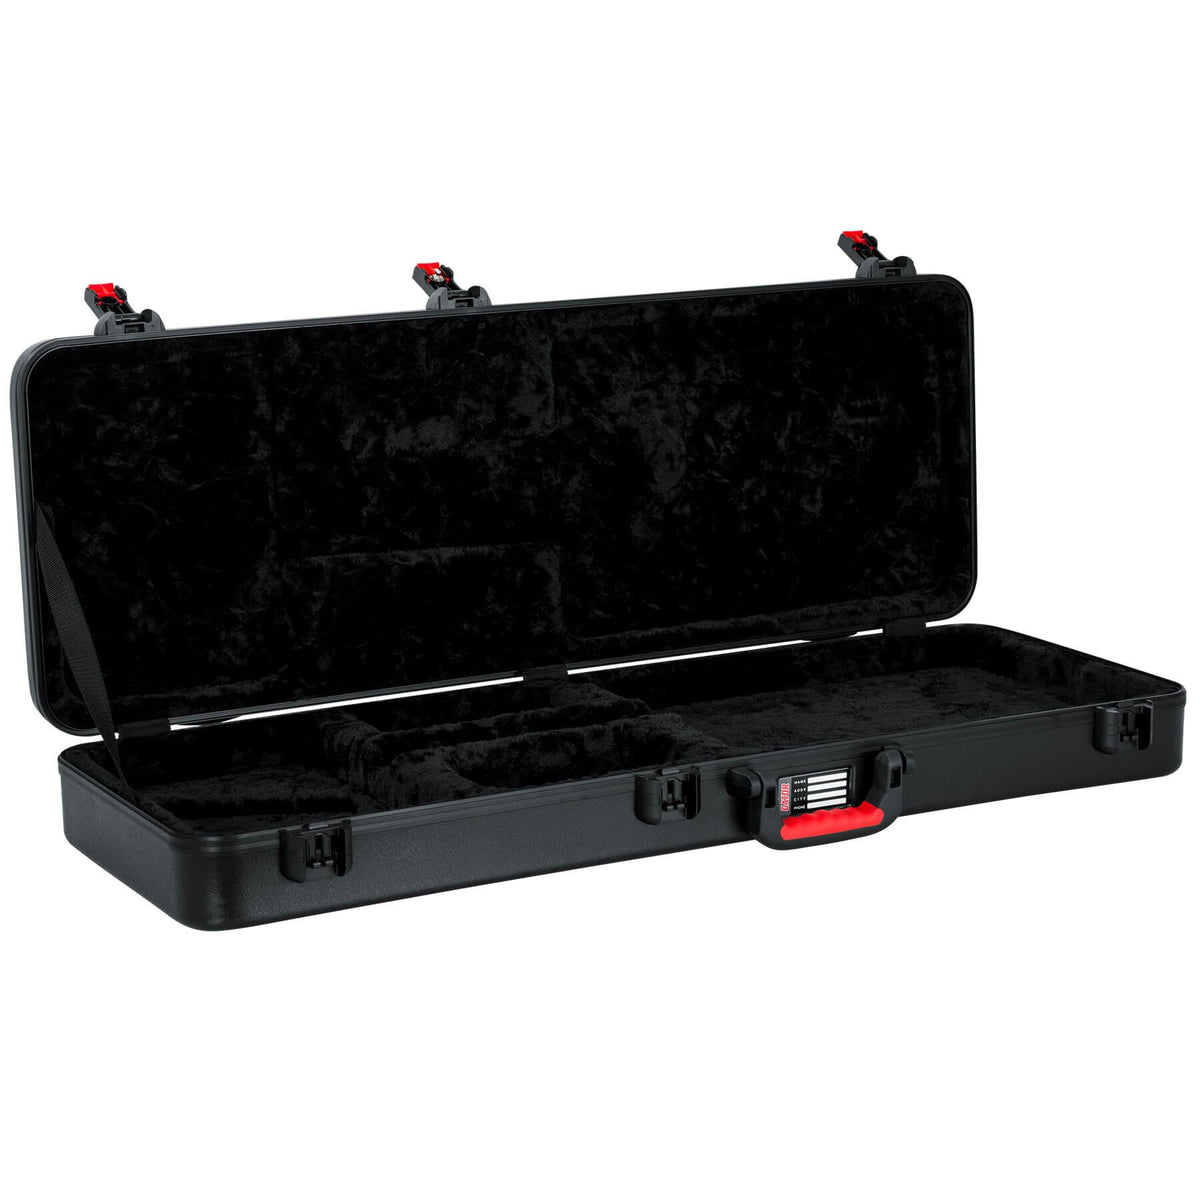 Gator TSA Electric Case fits ESP SC-337, SC-338, ST-213, TE-212